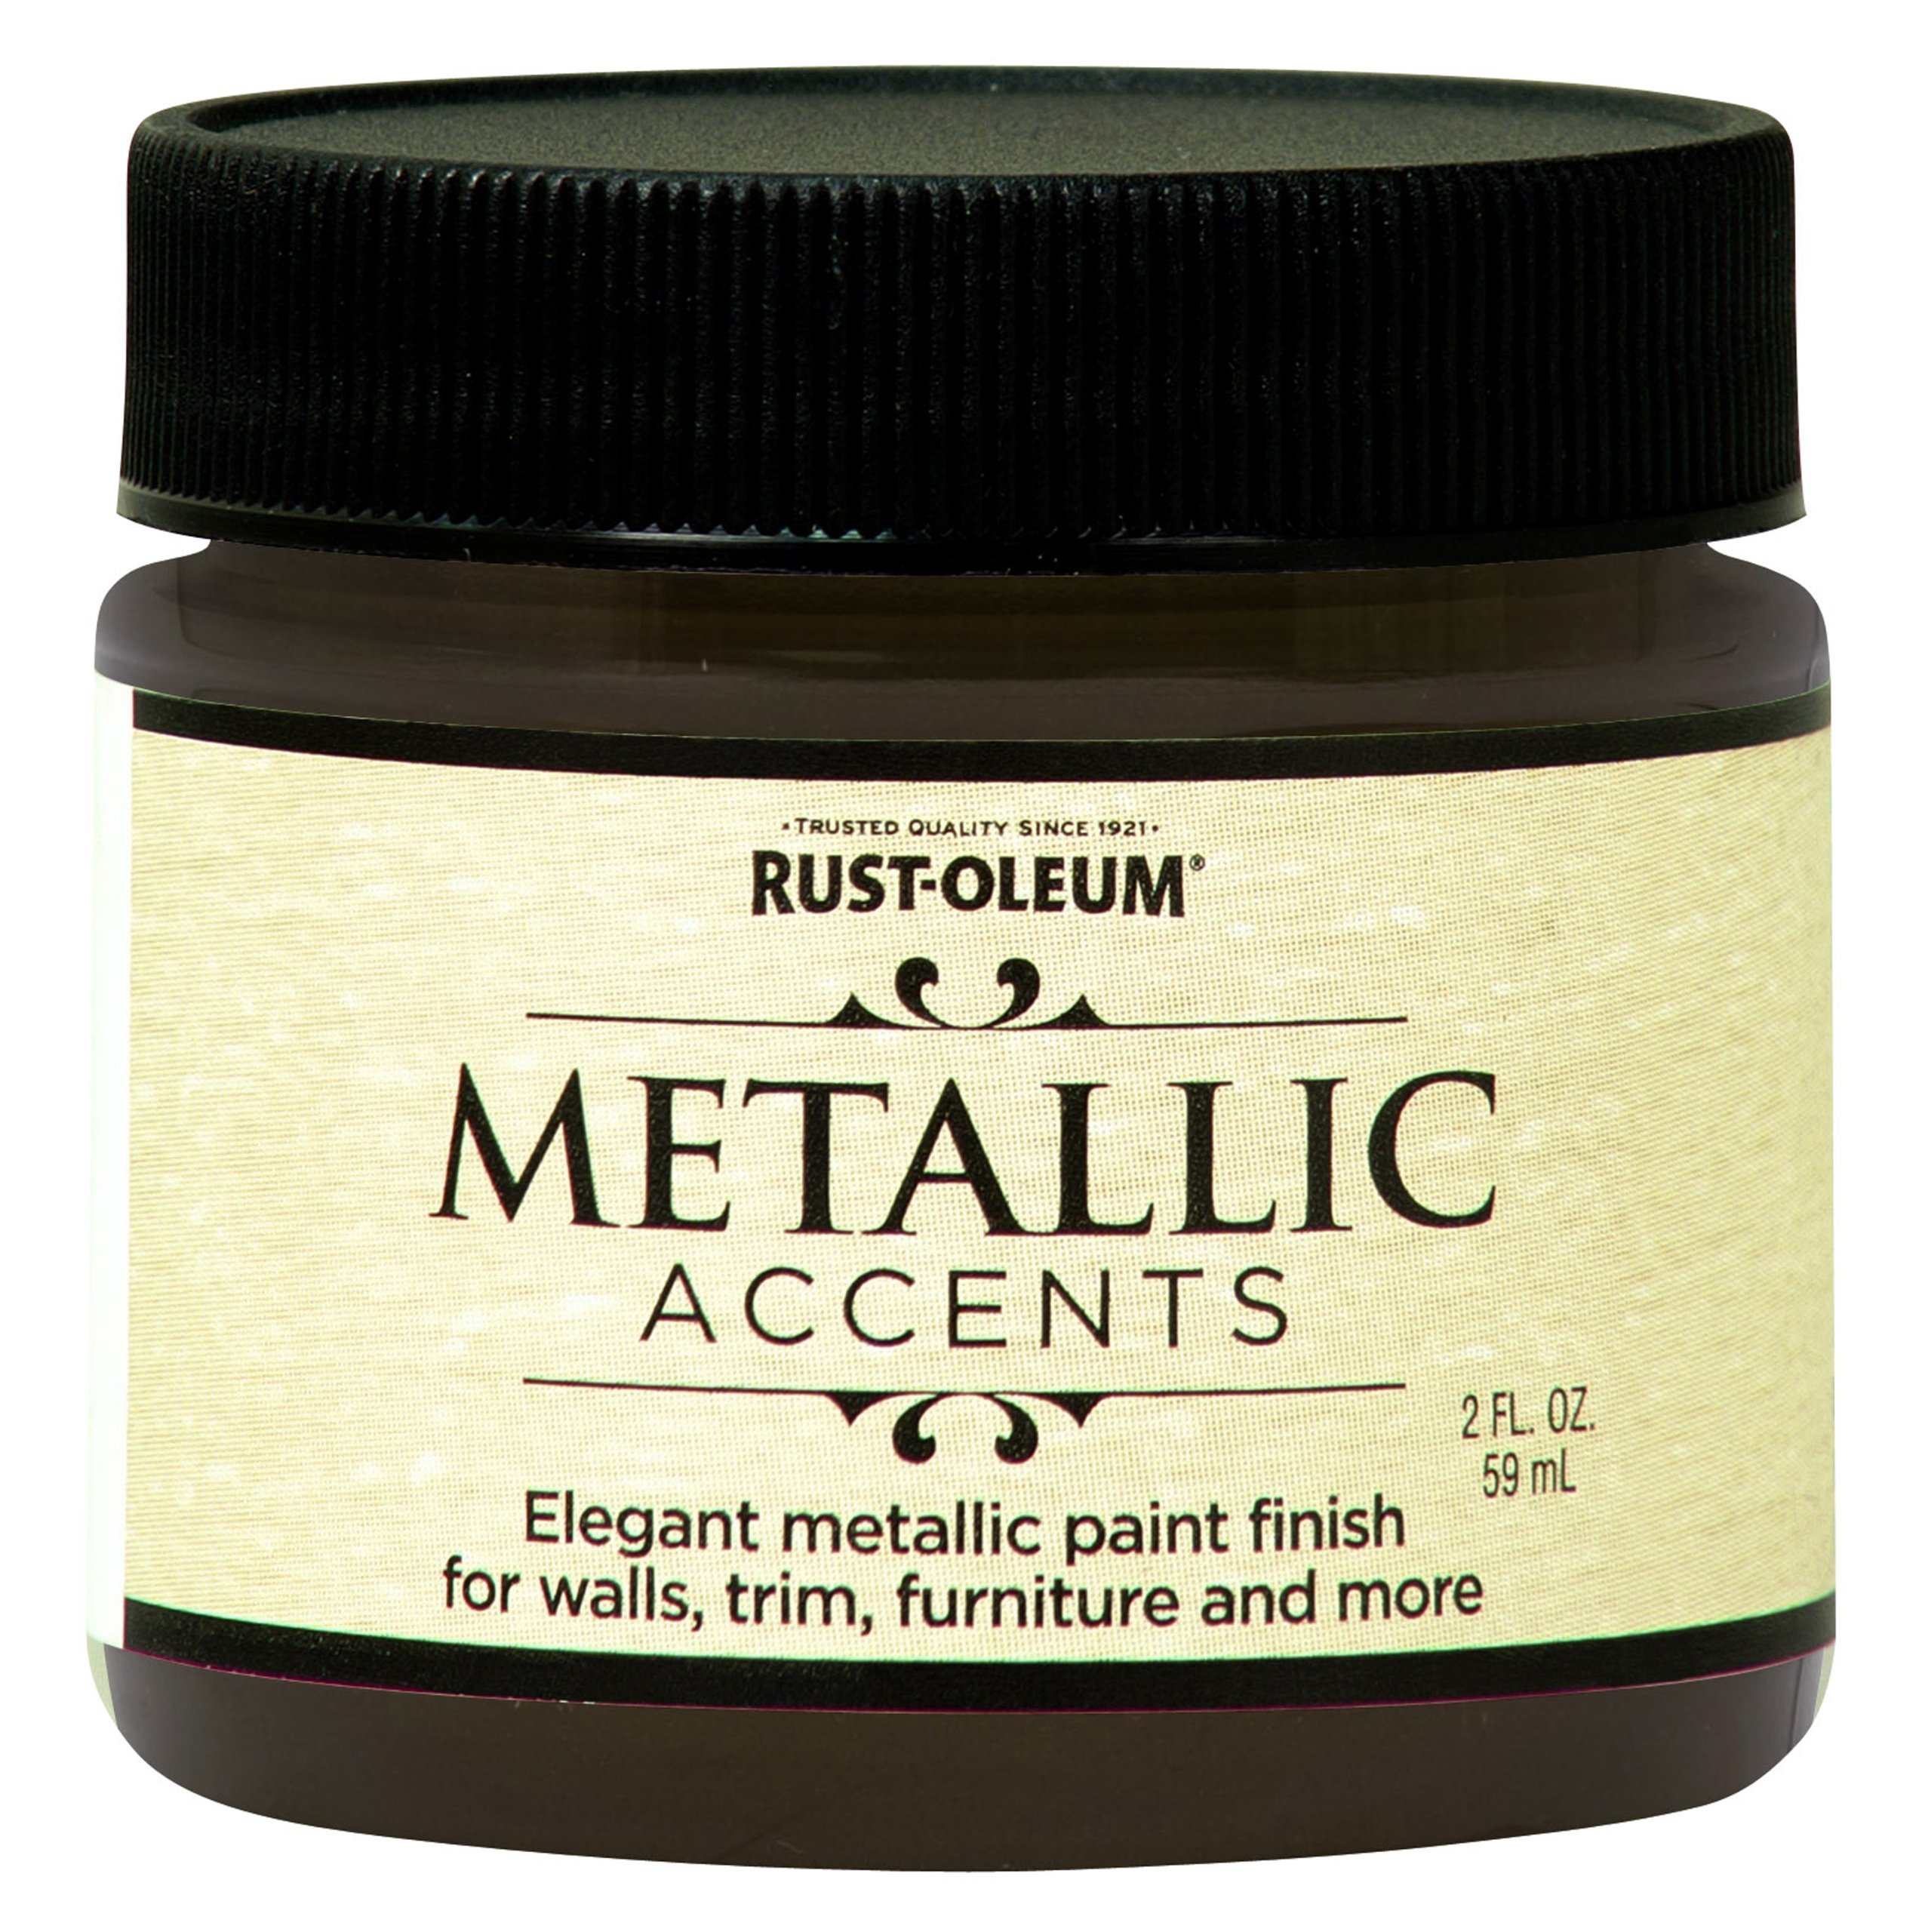 Rust-Oleum 255332 Metallic Accents Paint, 2 oz Trial Size, Classic Bronze by Rust-Oleum